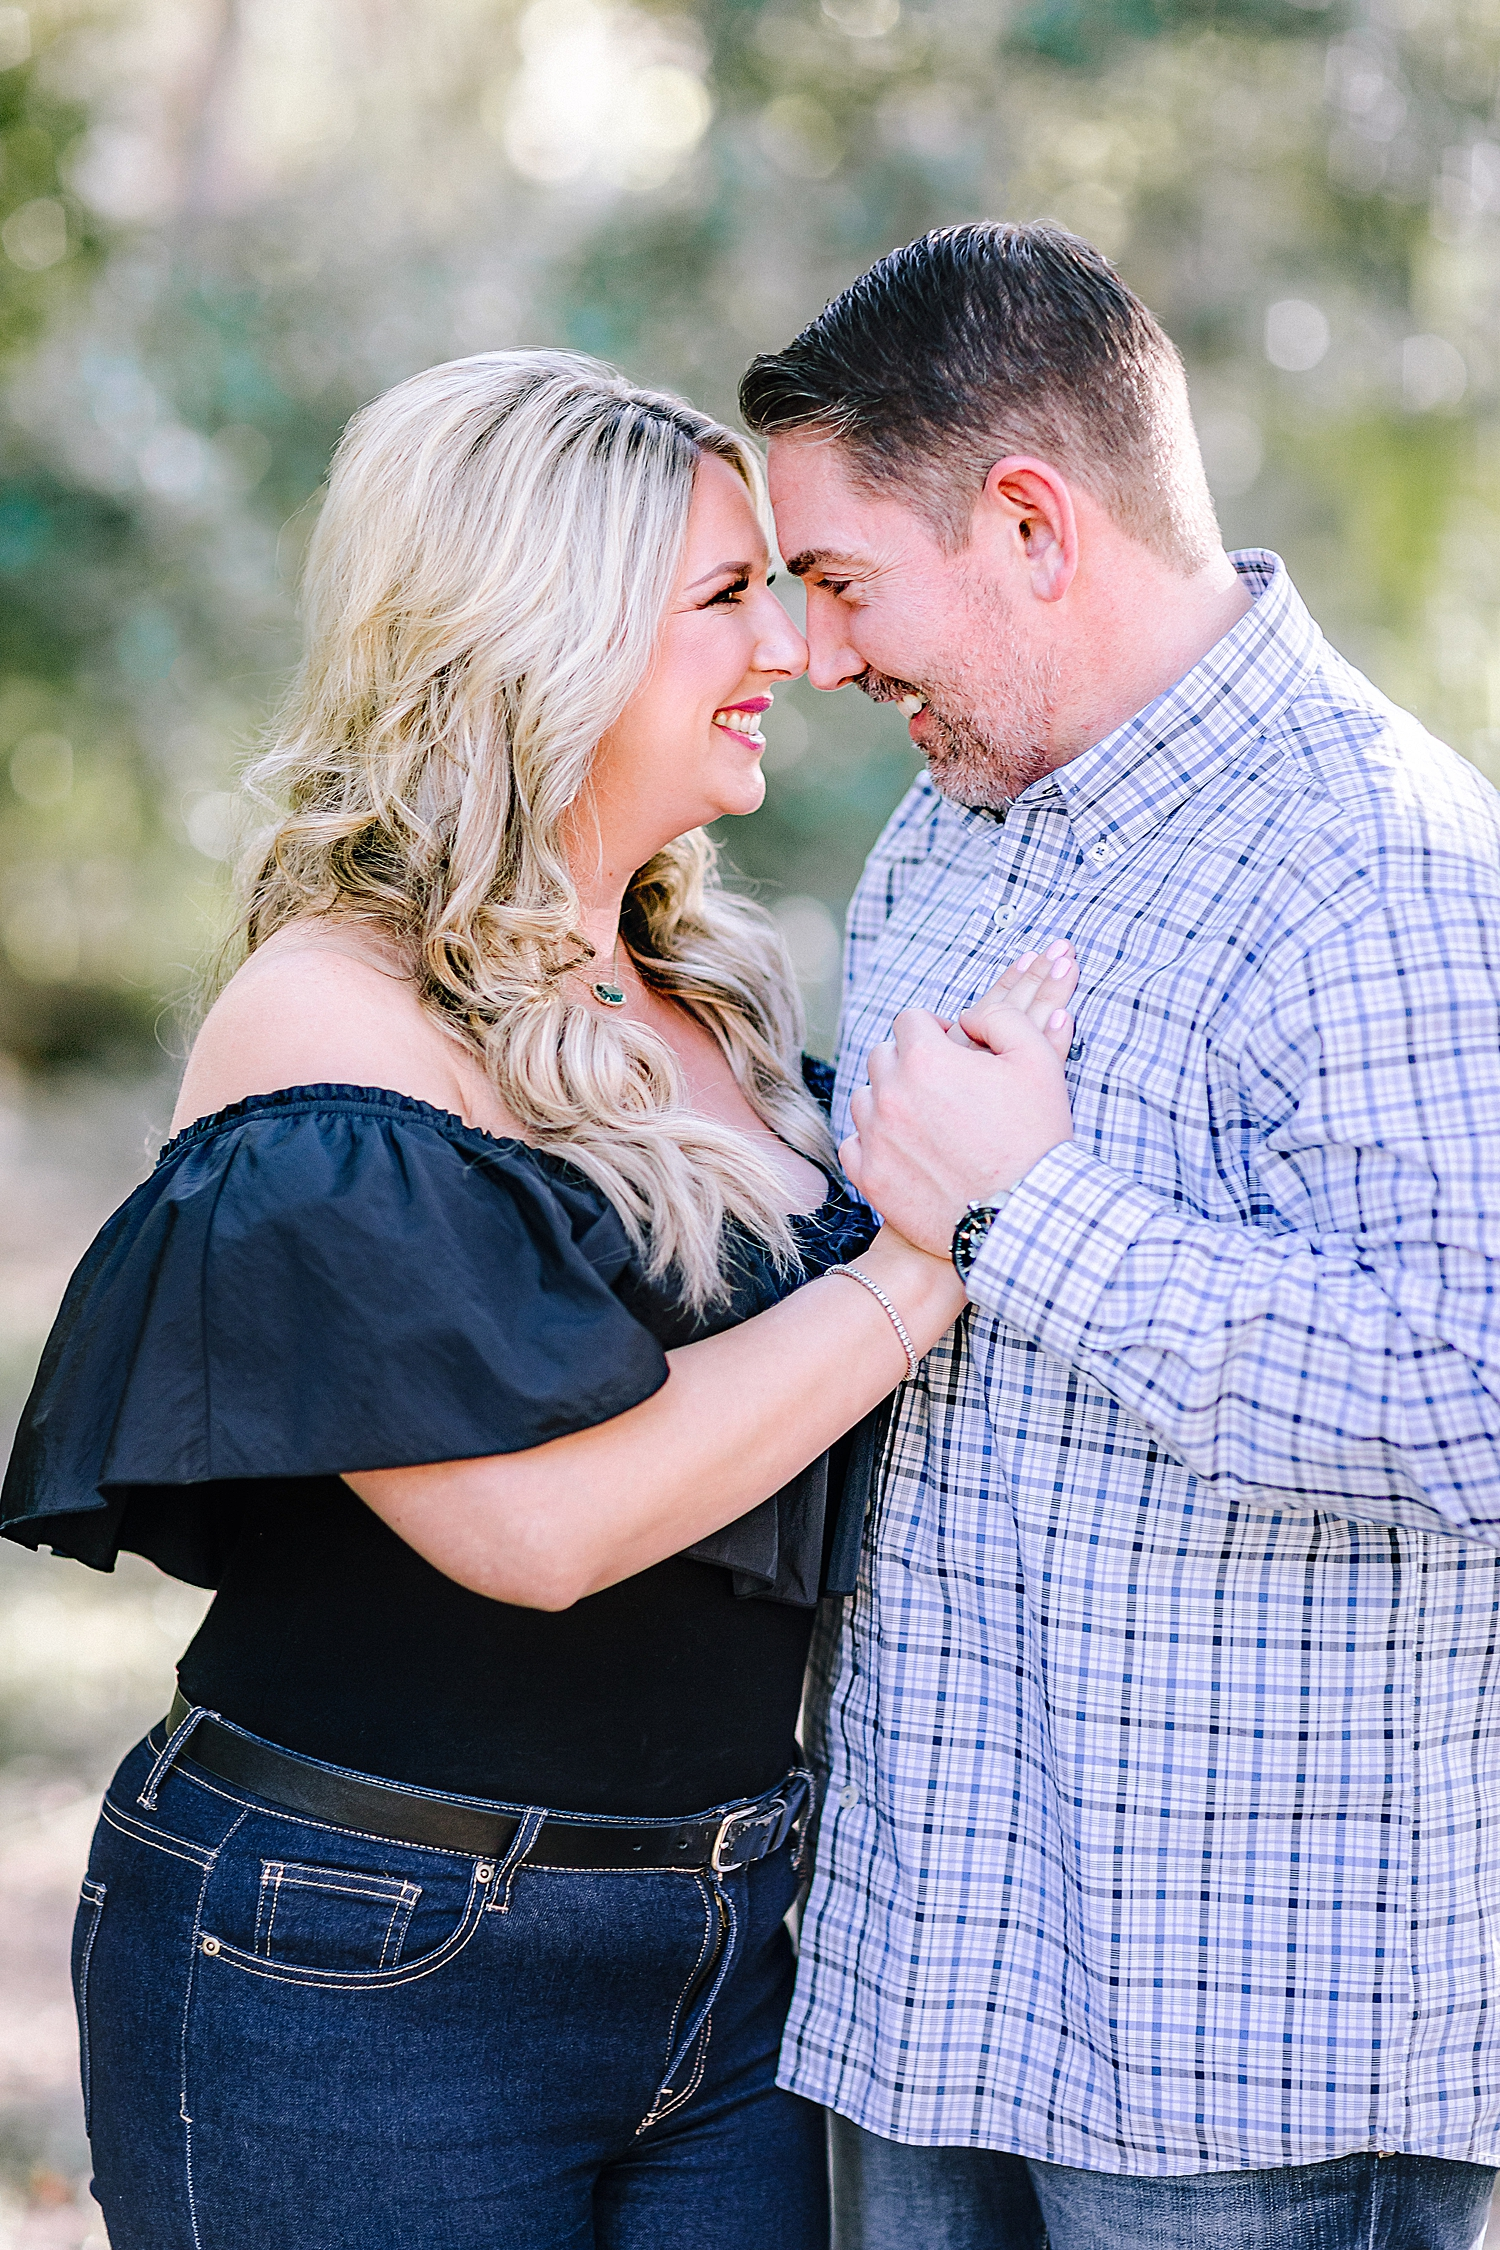 Engagement-Photo-Session-University-of-Incarnate-Word-UIW-San-Antonio-Texas-Carly-Barton-Photography_0040.jpg